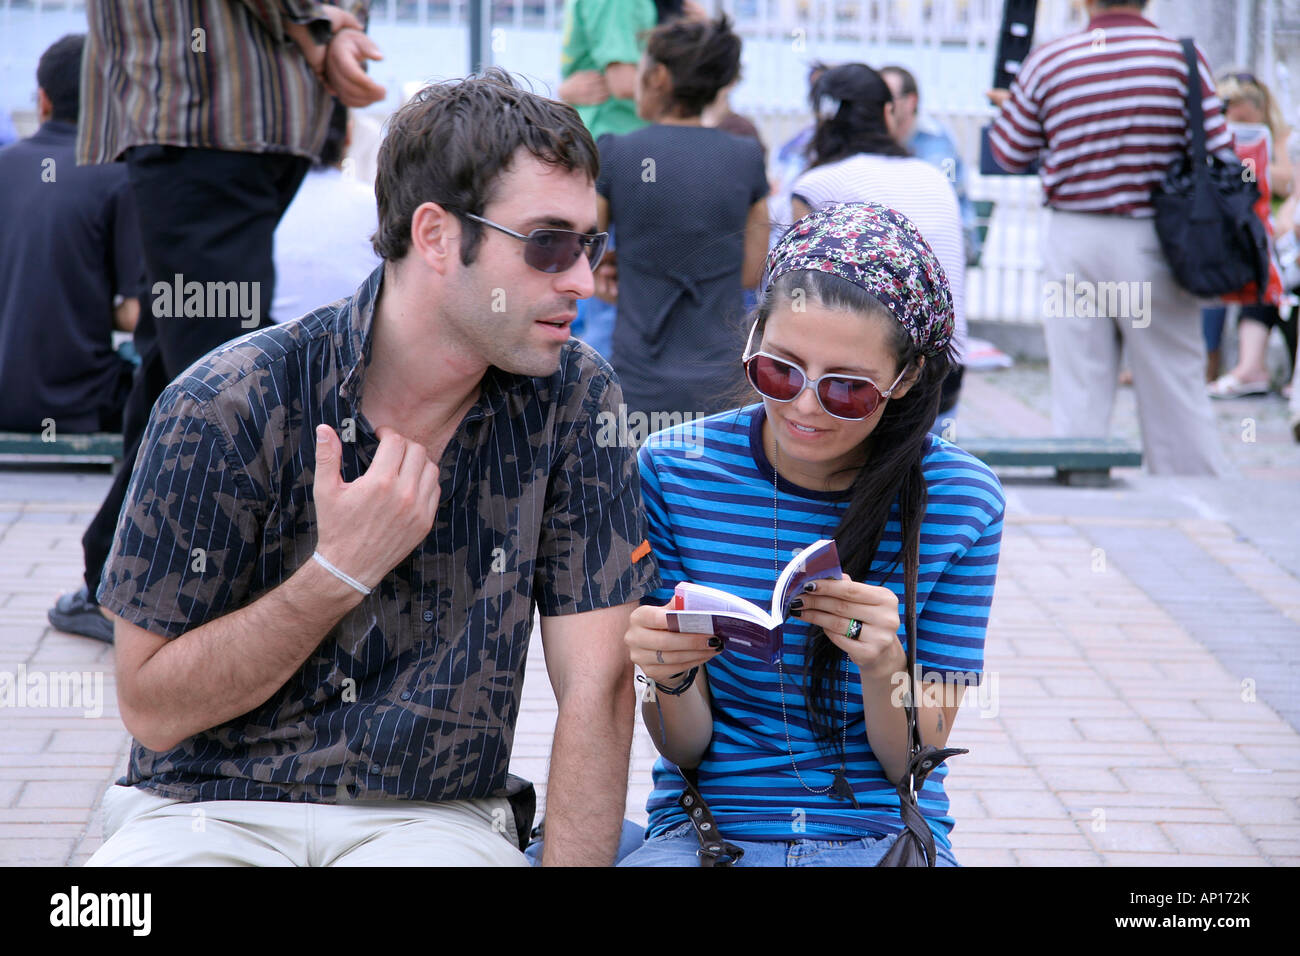 couple from different cultures trying to communicate - Stock Image